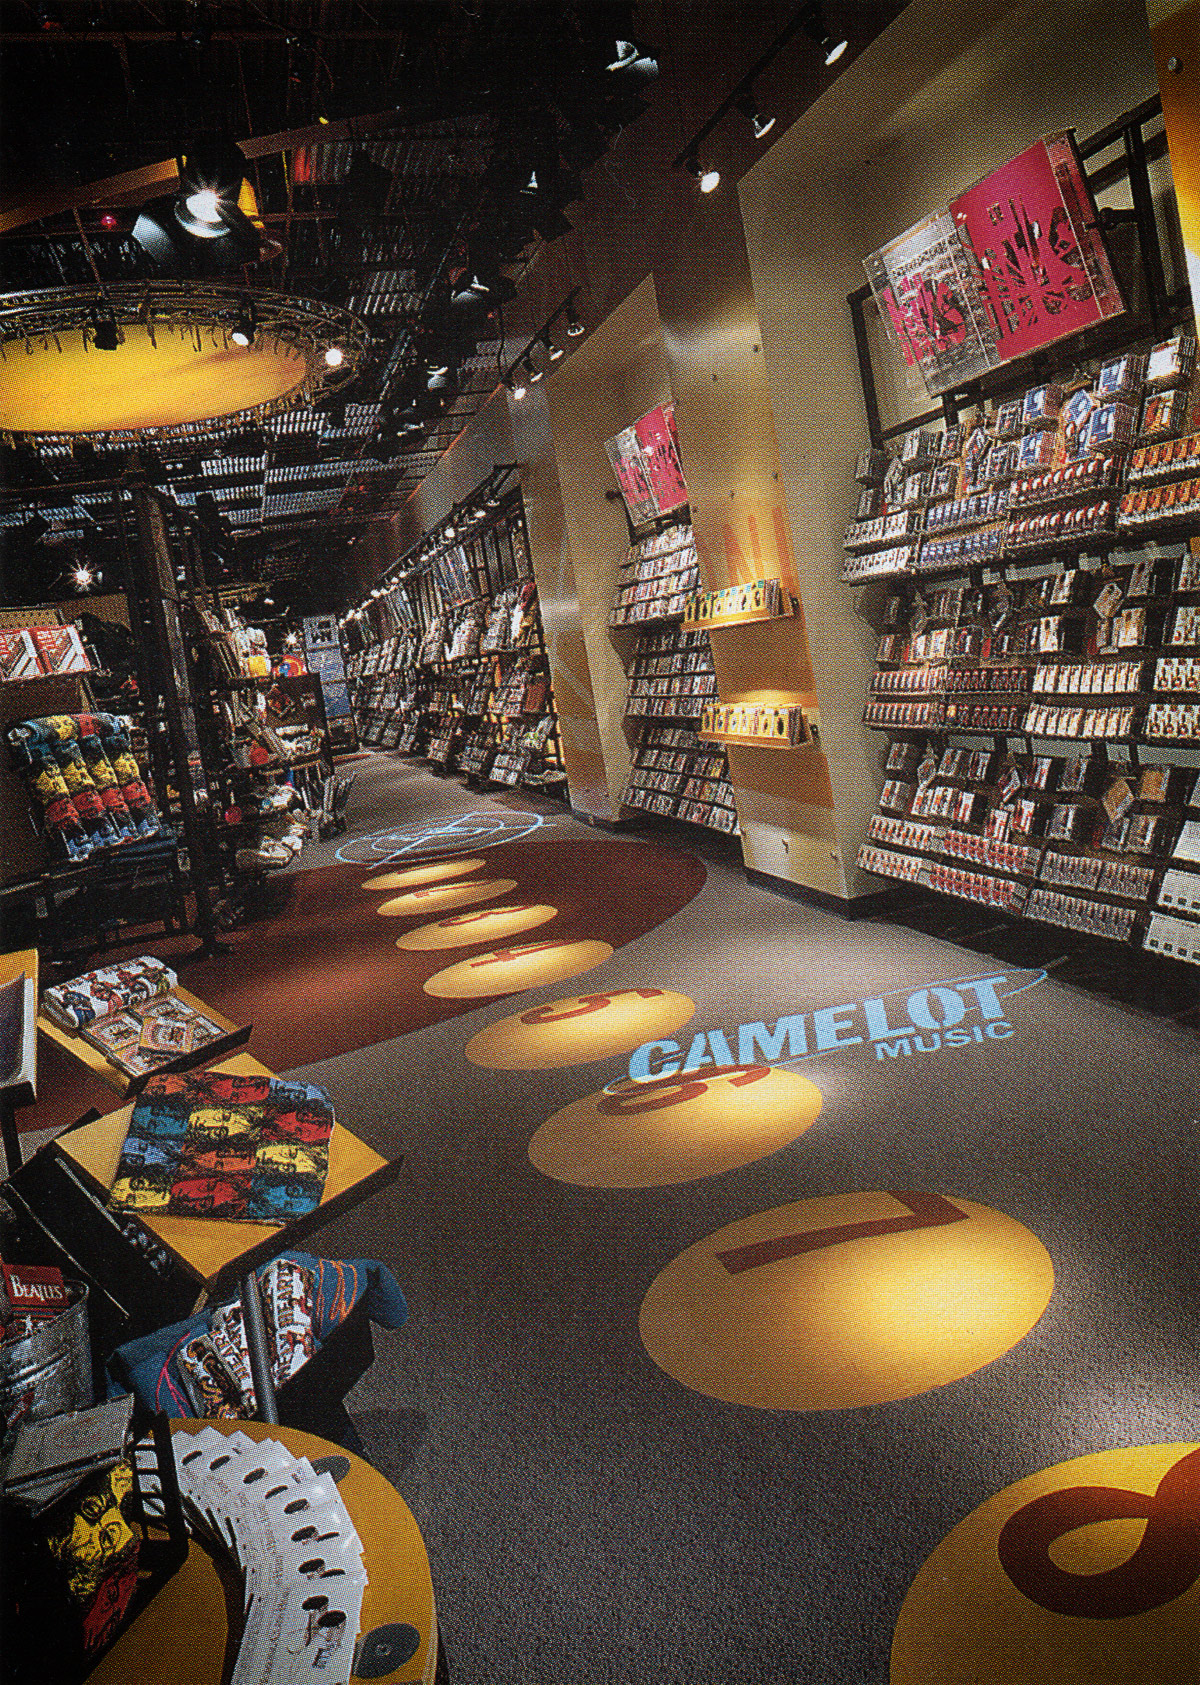 Camelot Music Record Store